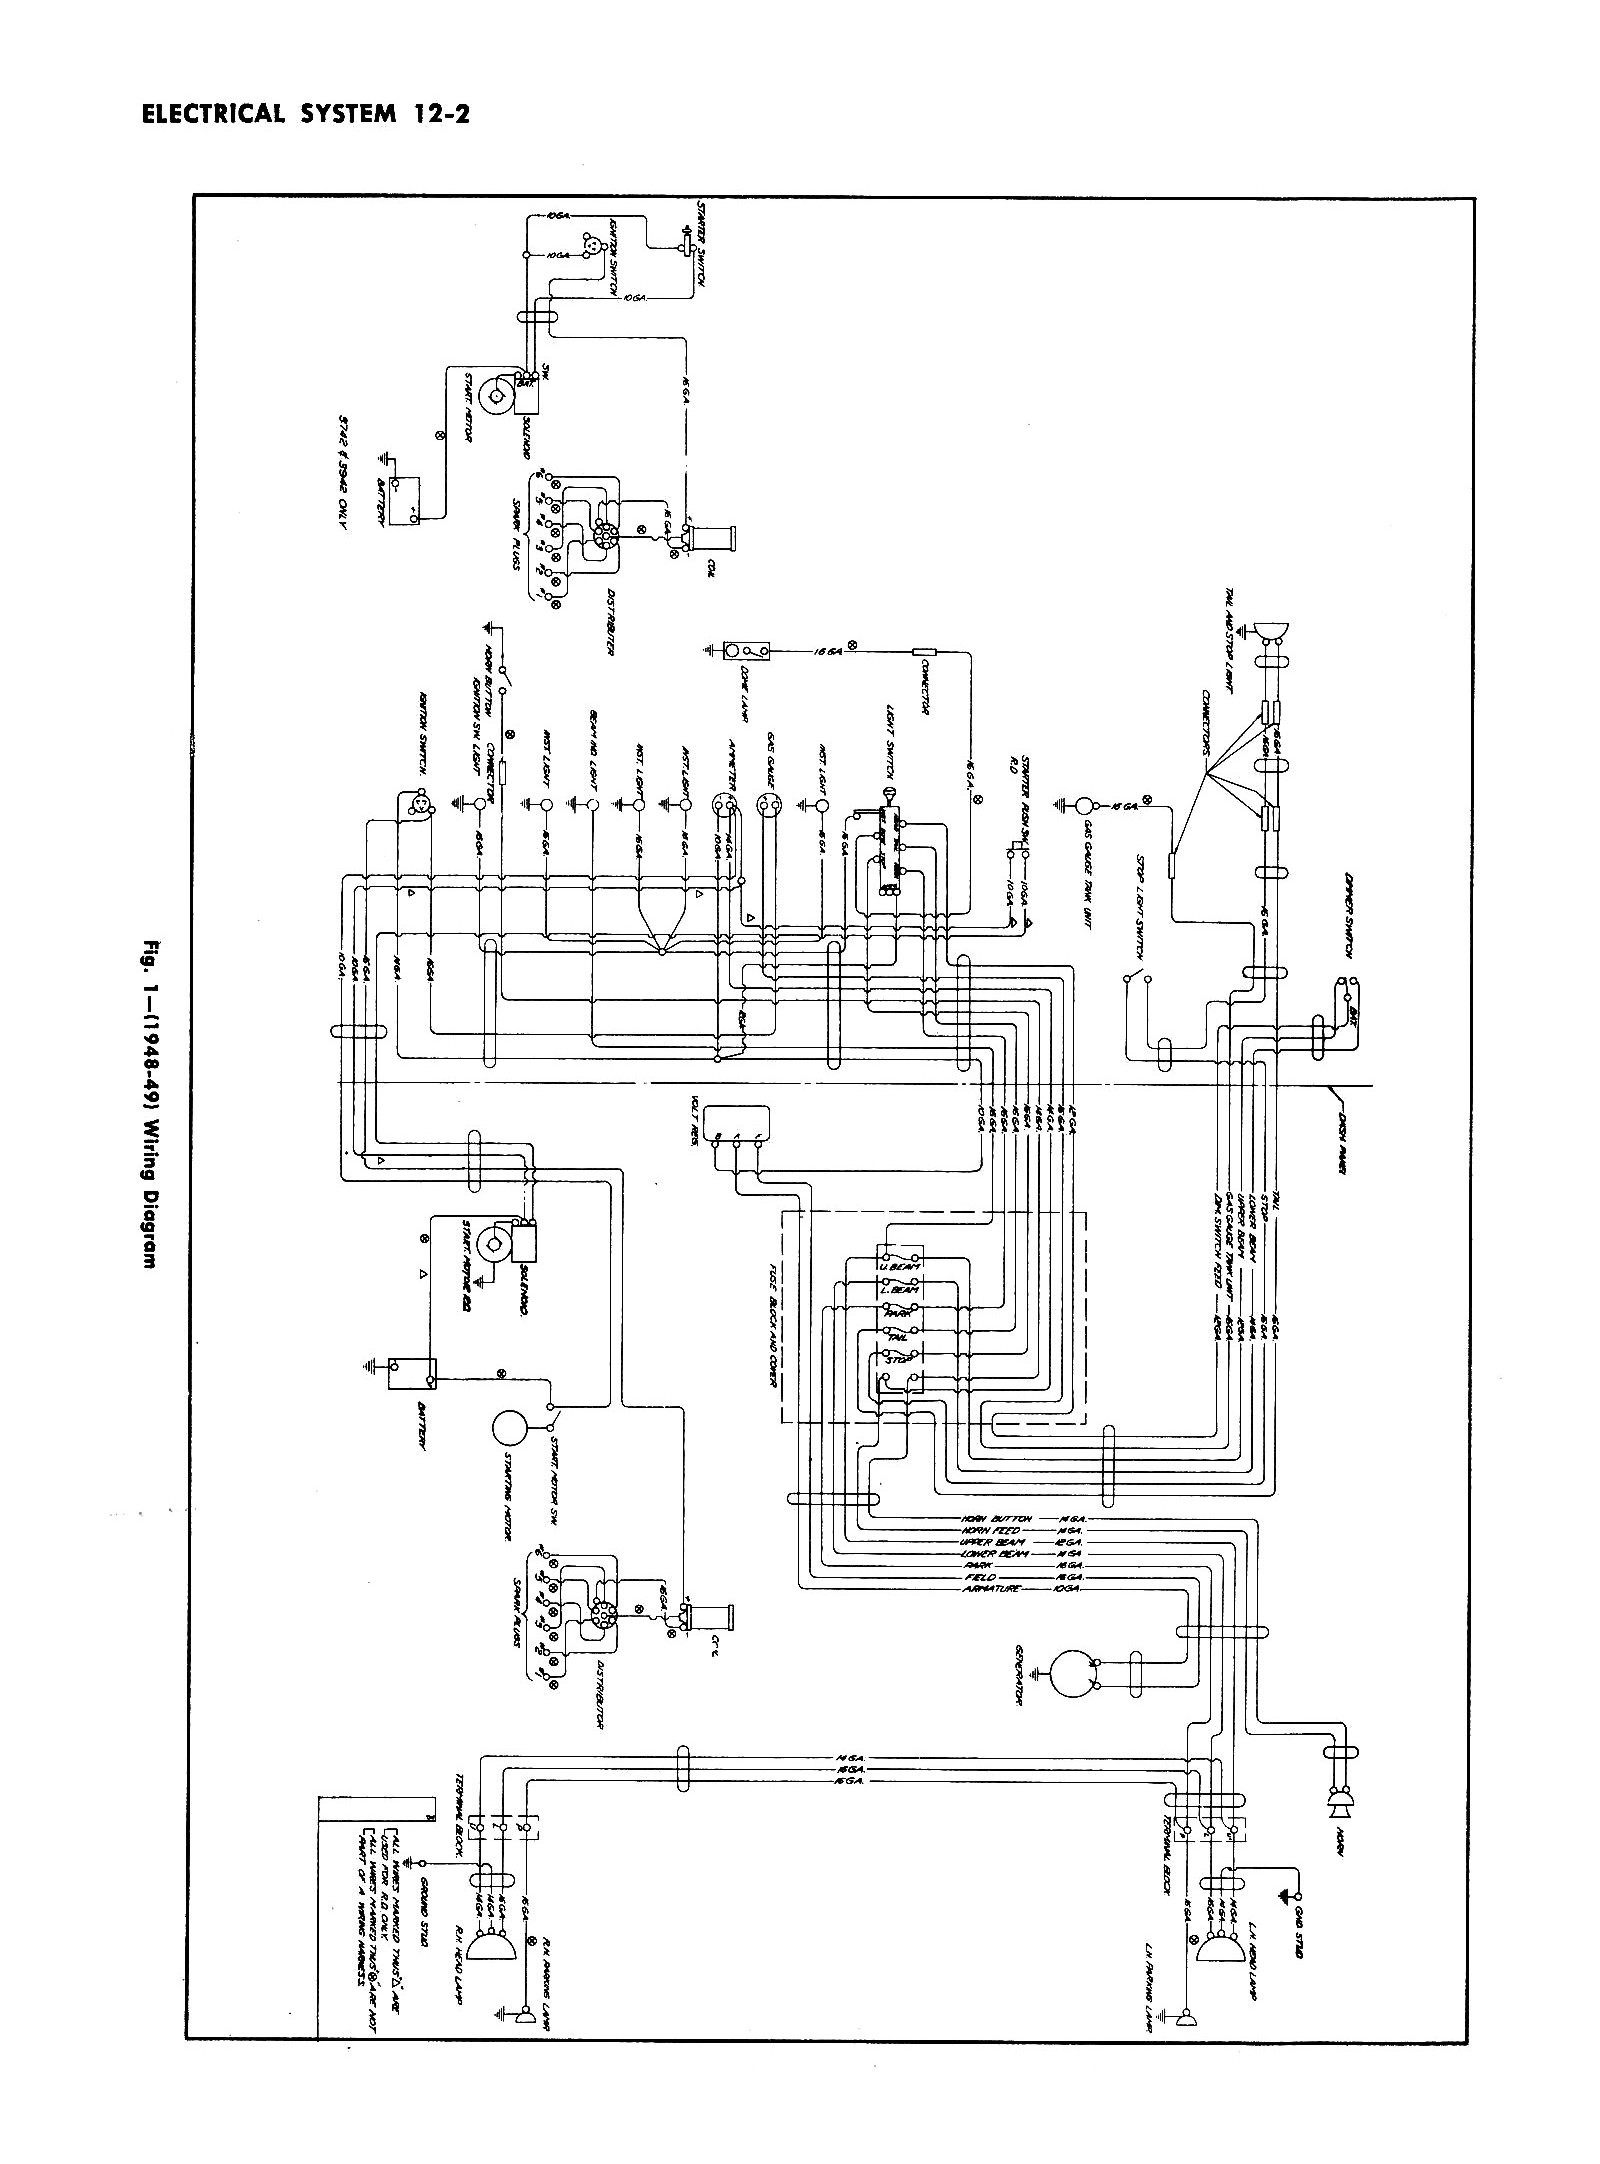 Gm 3800 Wiring Diagram Getting Ready With Chevy Diagrams Besides Ignition Switch Gmc Schema Rh 15 Valdeig Media De Automotive